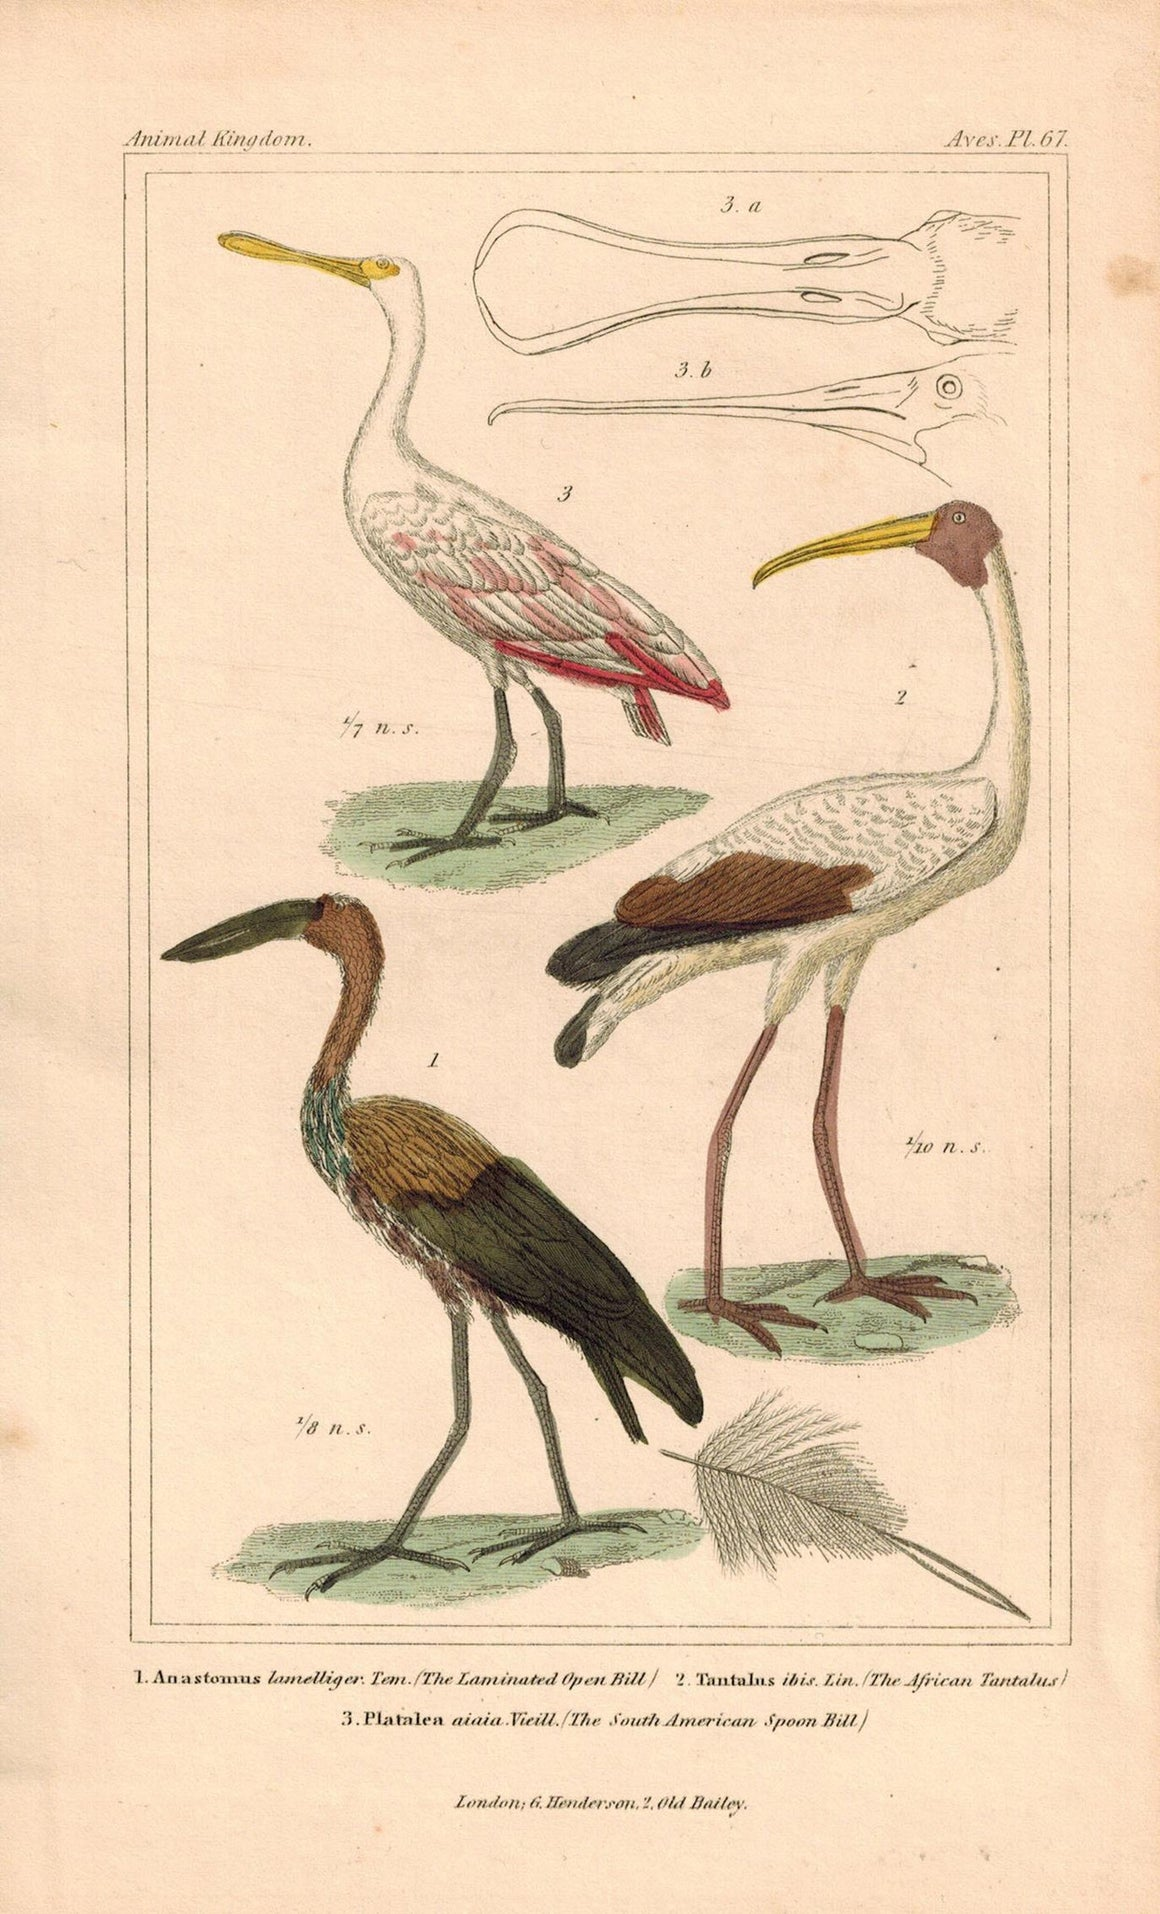 African Tantalus Spoon Bill Antique Hand Color Cuvier Bird Print 1837